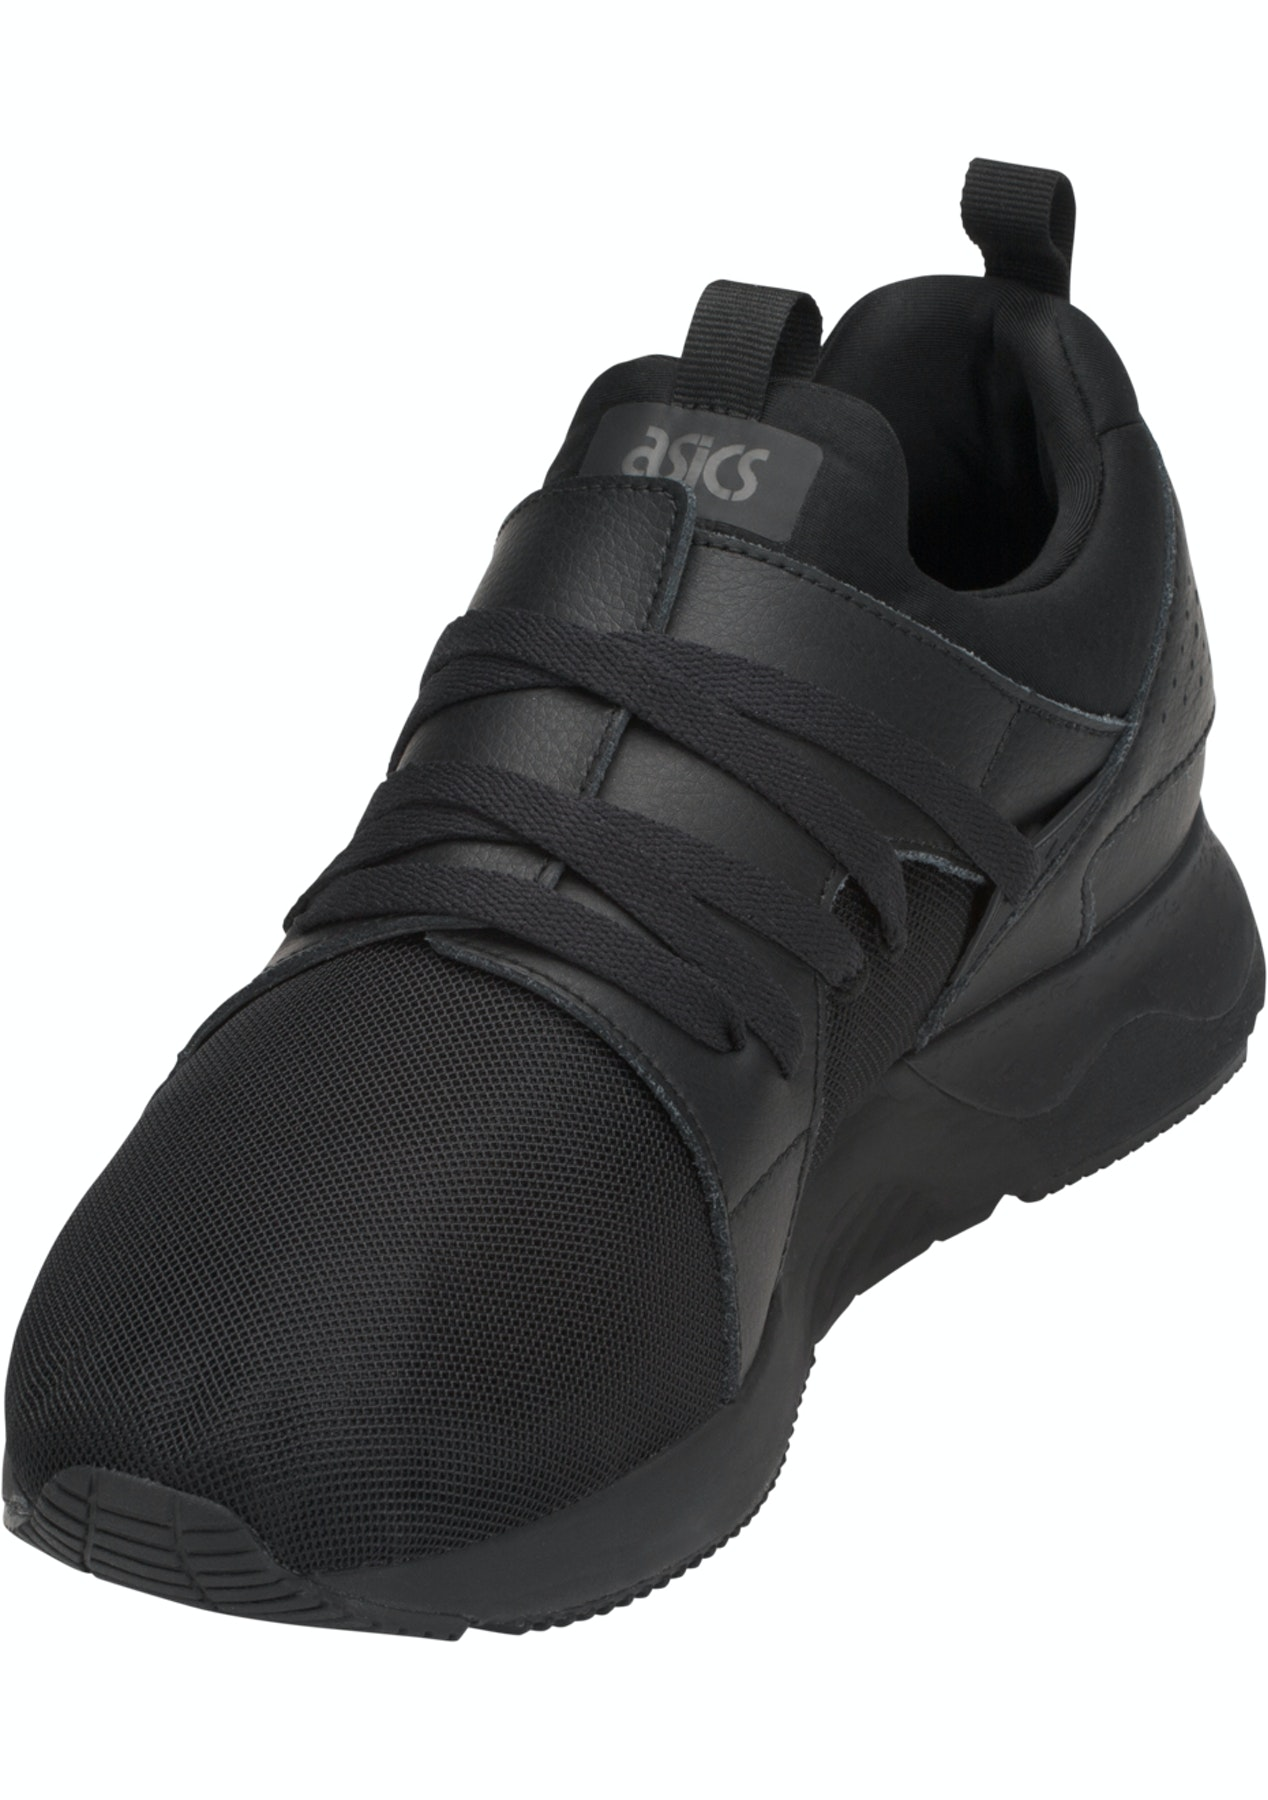 31bbb196aaf2 Asics Tiger - Gel-Lyte V Sanze - Unisex - Black - Mens Outlet Price Drop -  Onceit